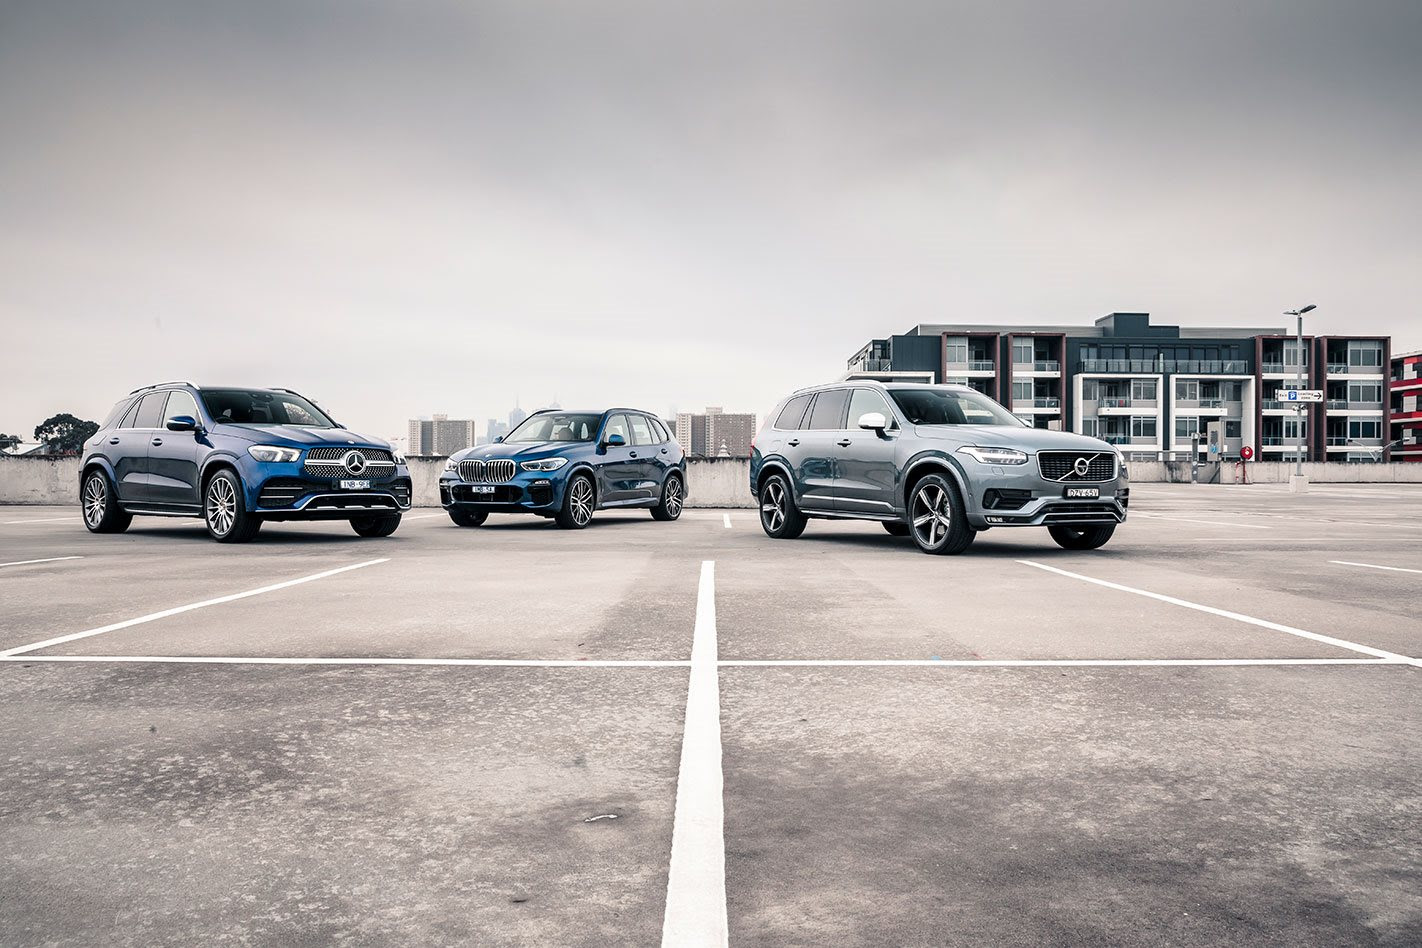 BMW X5 vs Mercedes-Benz GLE vs Volvo XC90 comparison